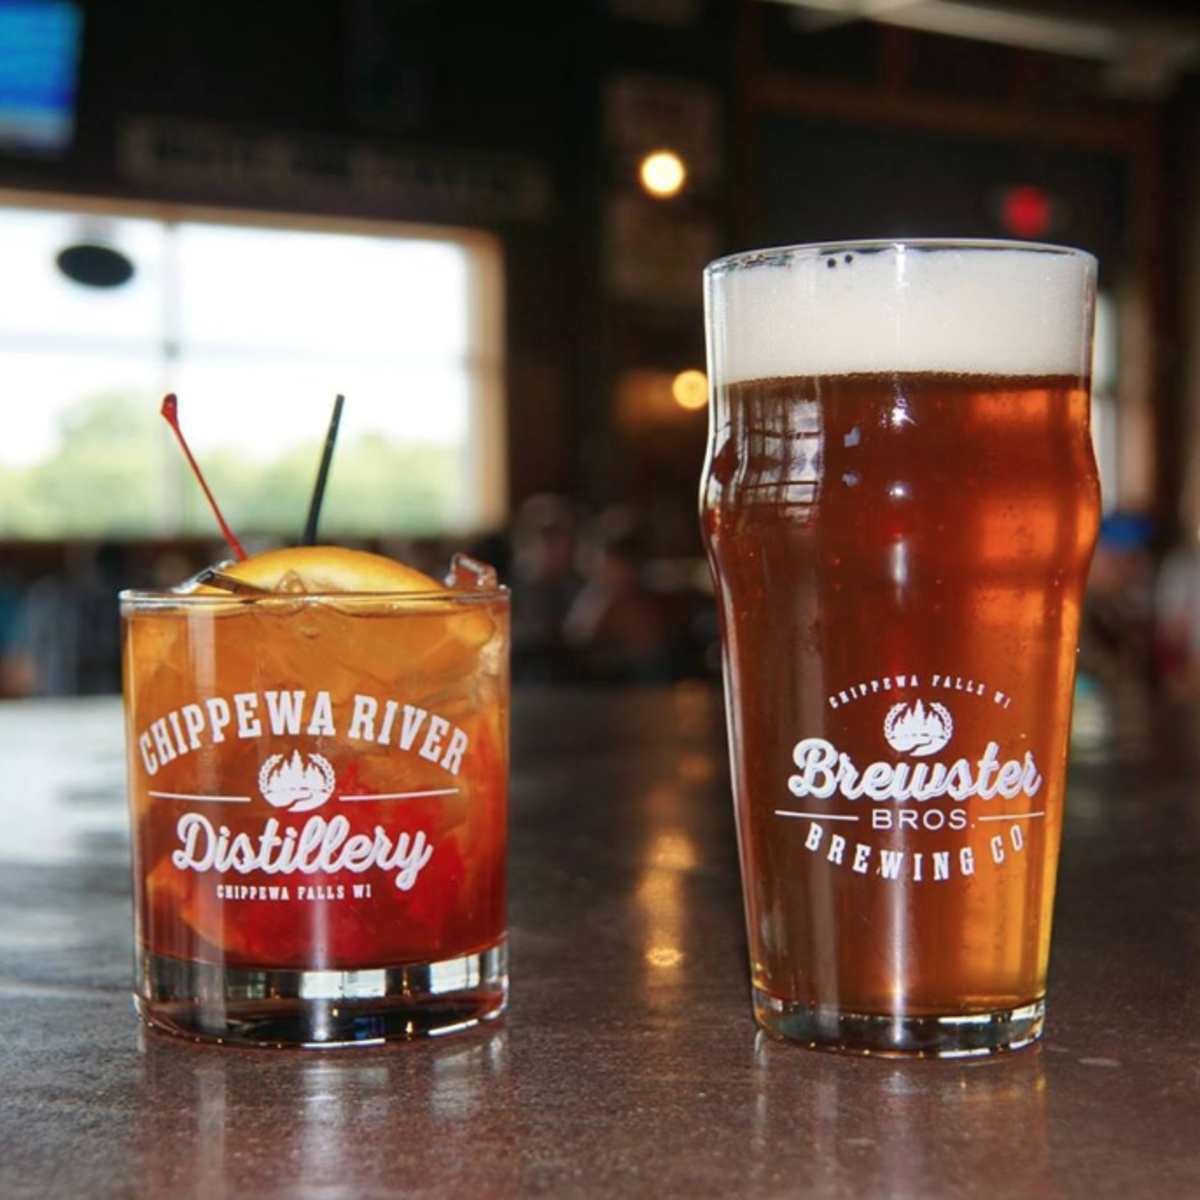 Drinks from the Chippewa River Distillery and Brewster Bros. Brewing Company